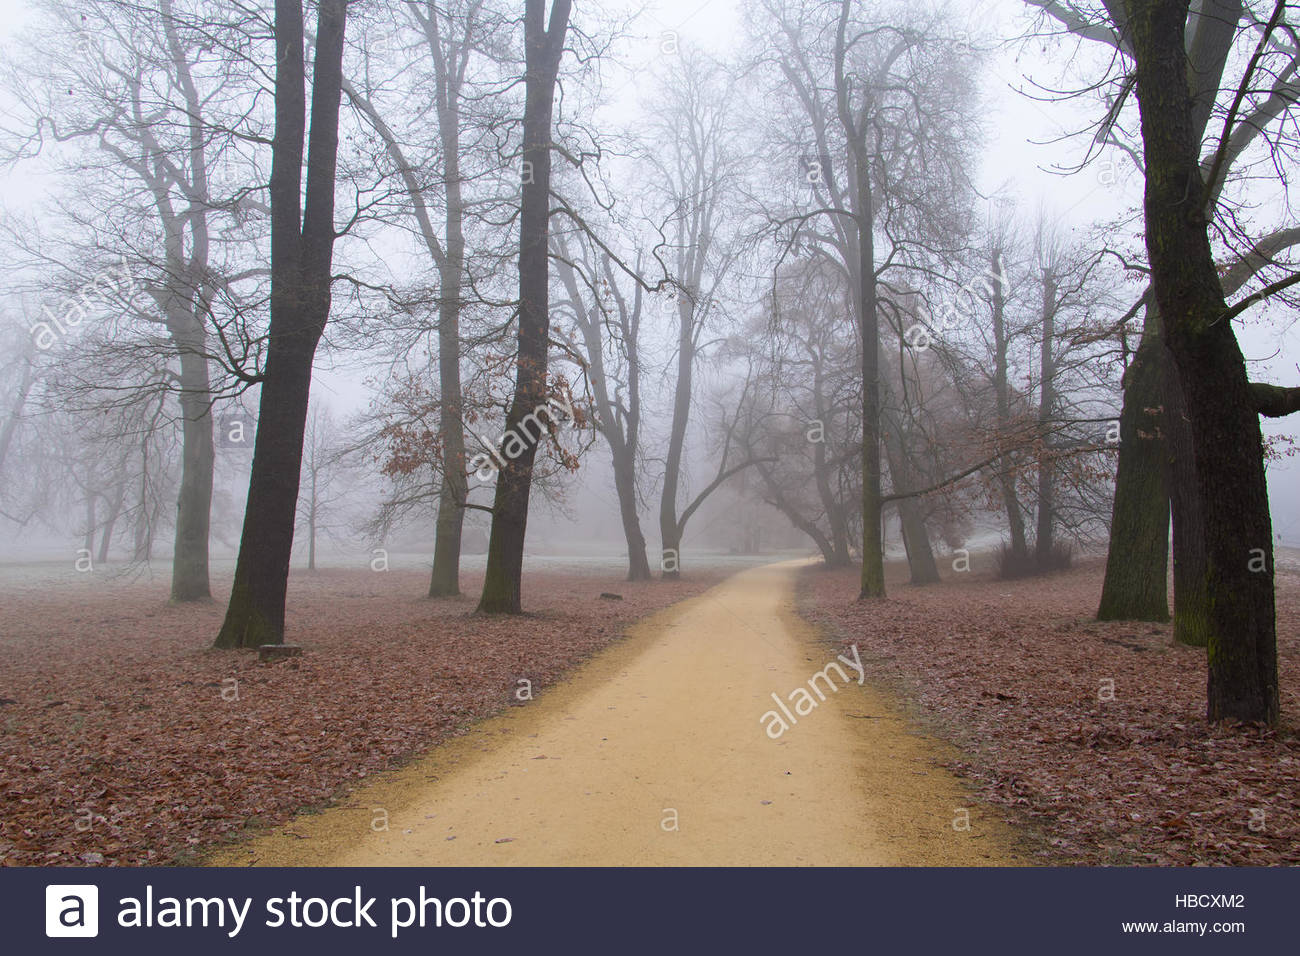 Volkspark Gienicke, Berlin city park in fall, foggy, misty weather foggy day autumn landscape, moody abstract landscape - Stock Image